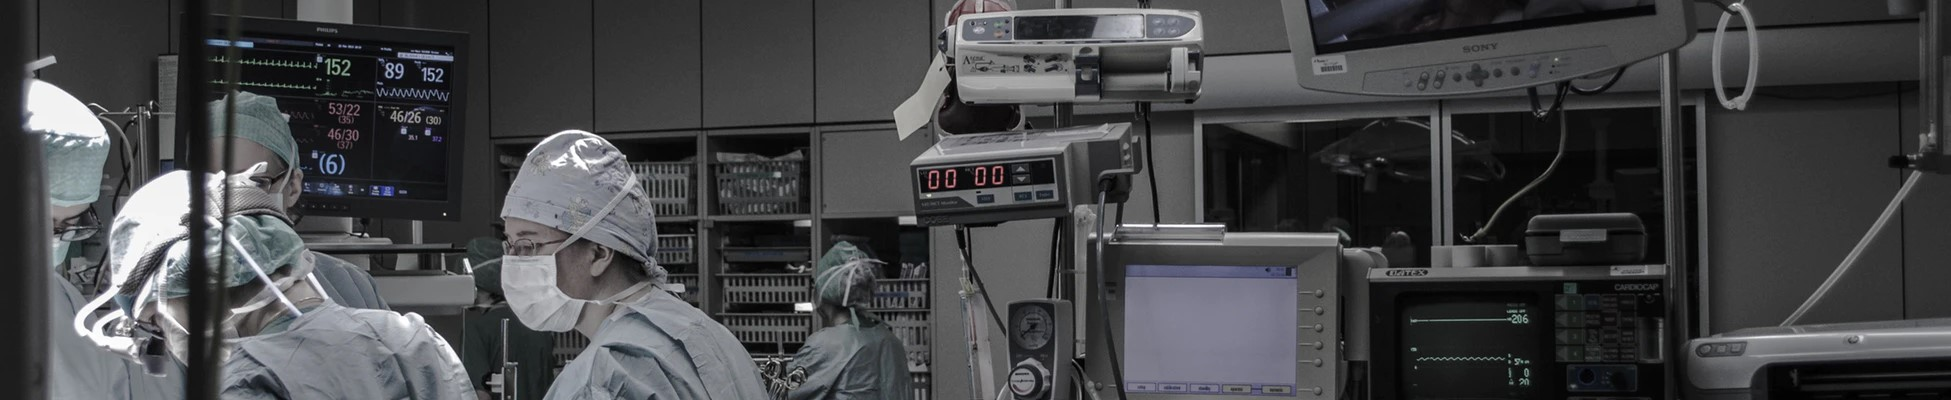 Real-time scheduling for operating rooms